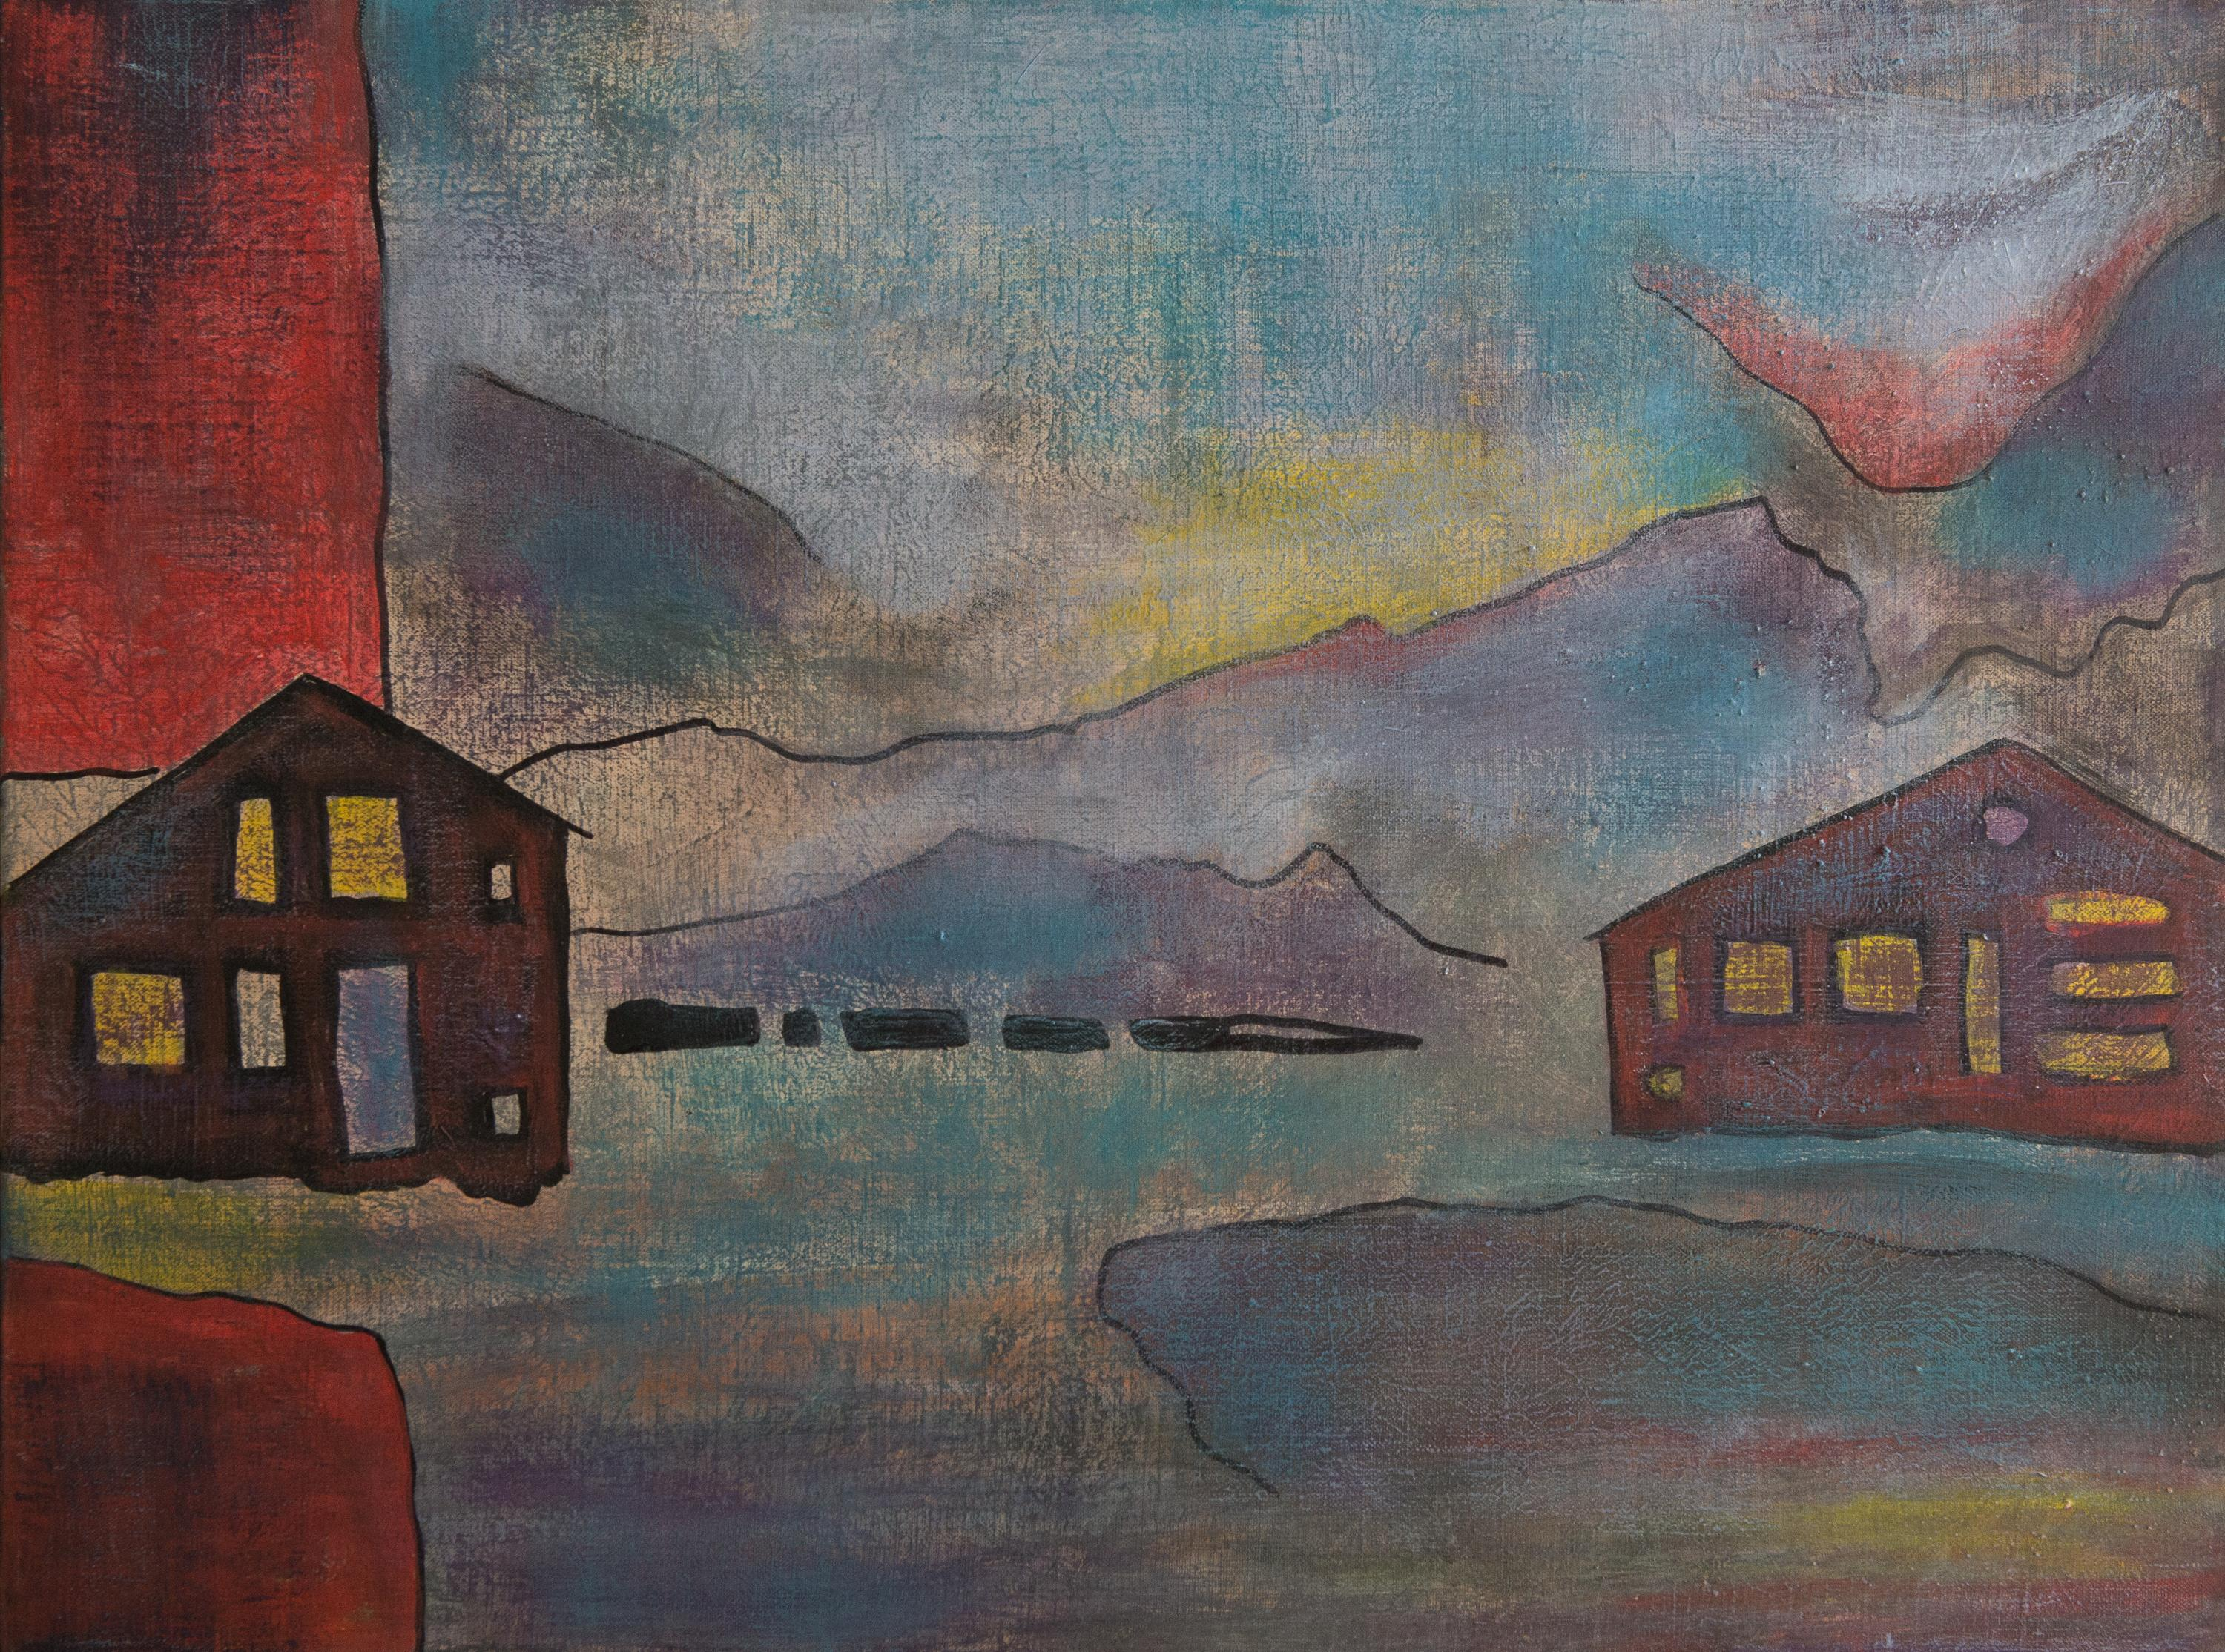 Untitled, Modern Surrealist Art Acrylic Painting Canvas Landscape Blue Red City